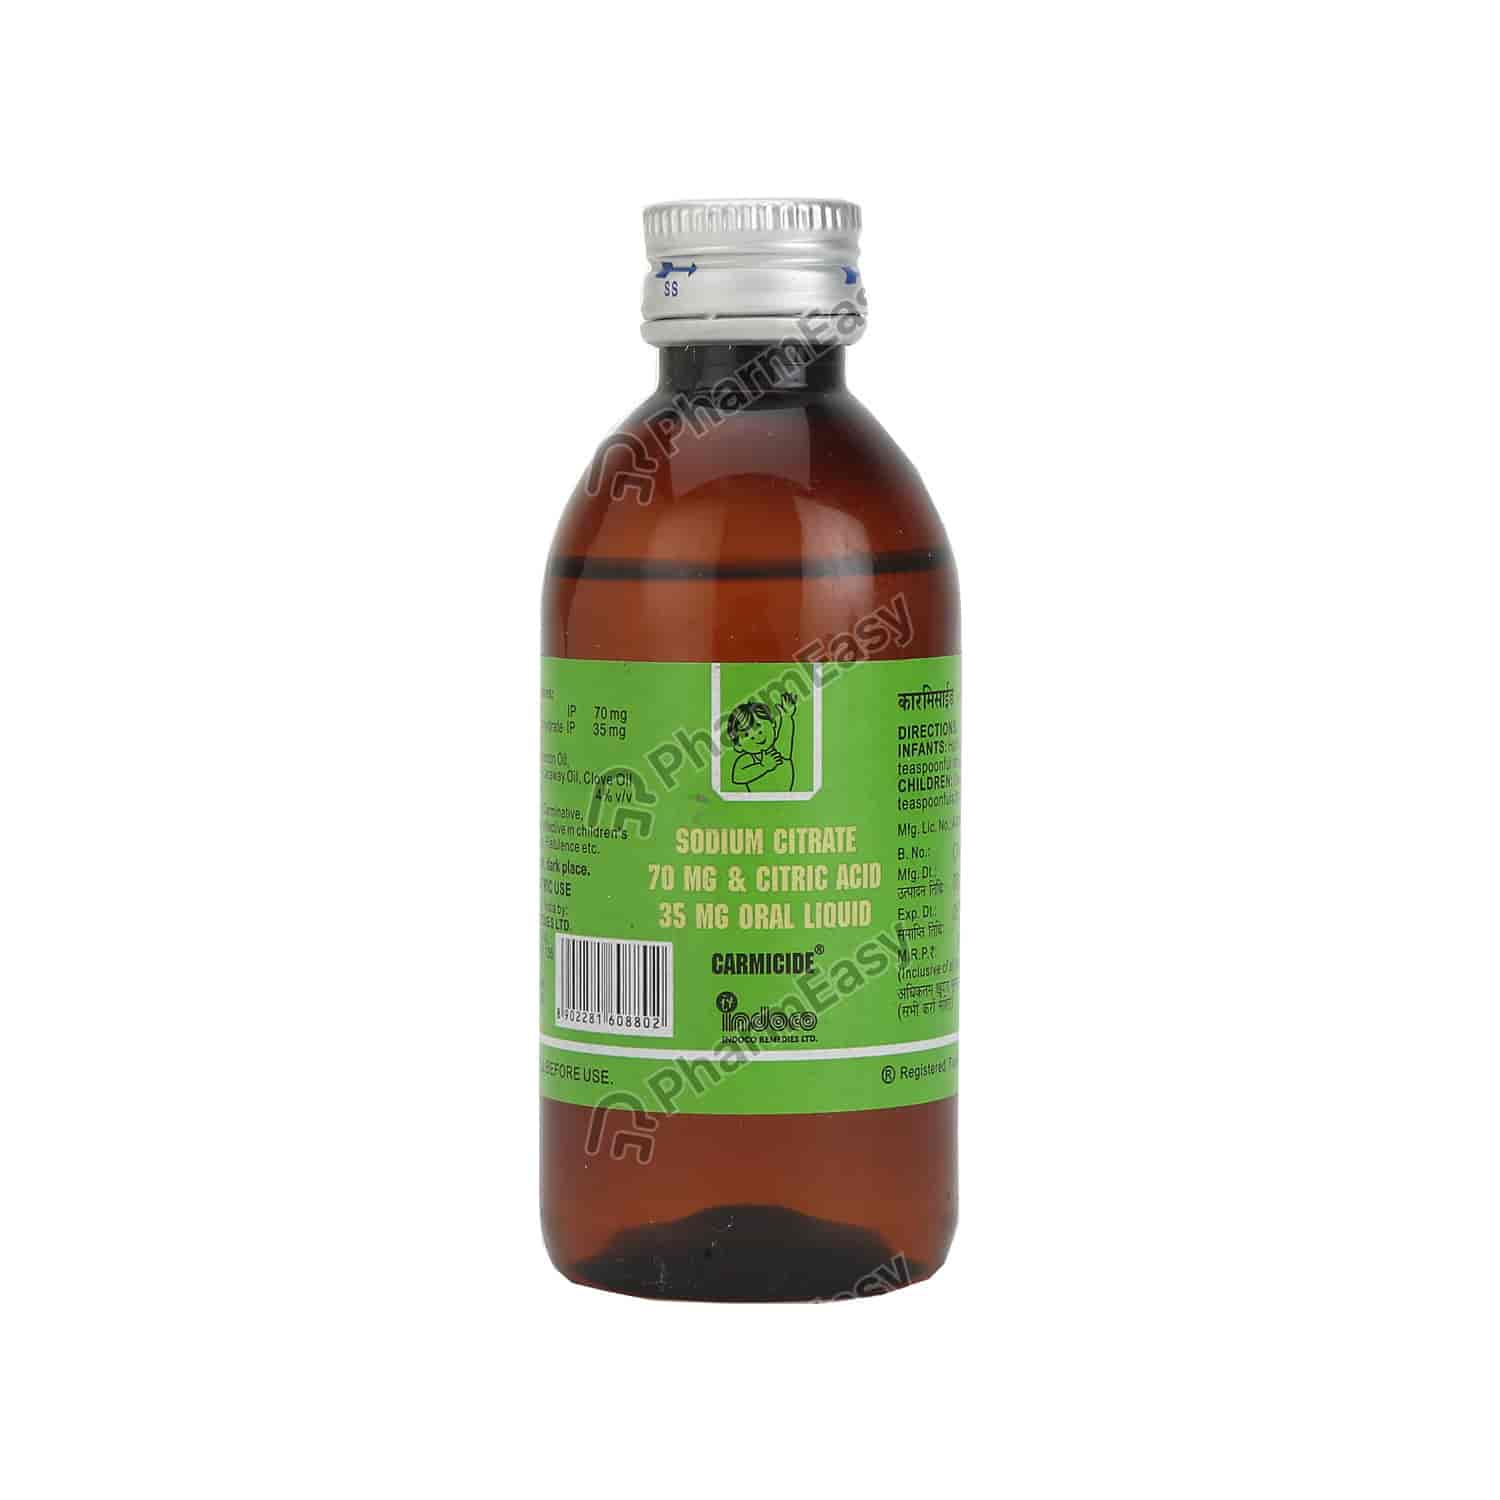 Carmicide Peadiatric Liquid 100ml